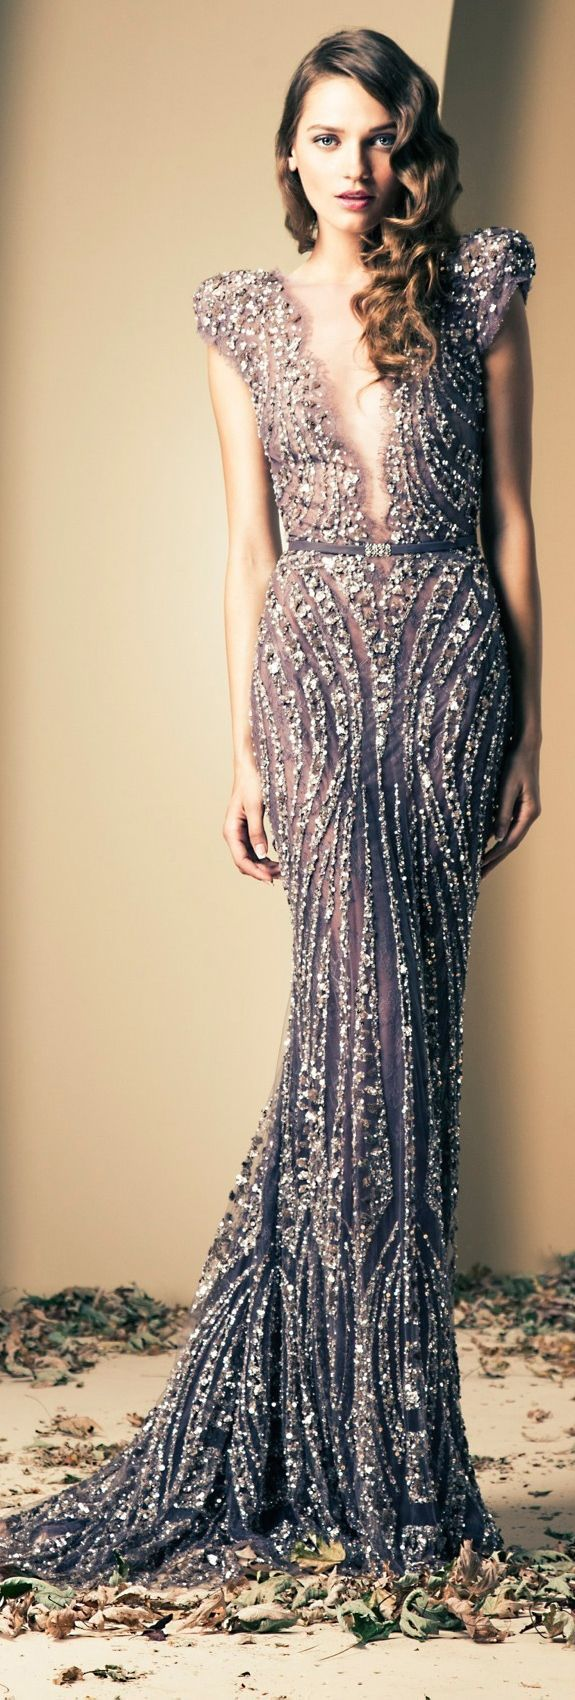 Glam in Long and Sparkly Dress